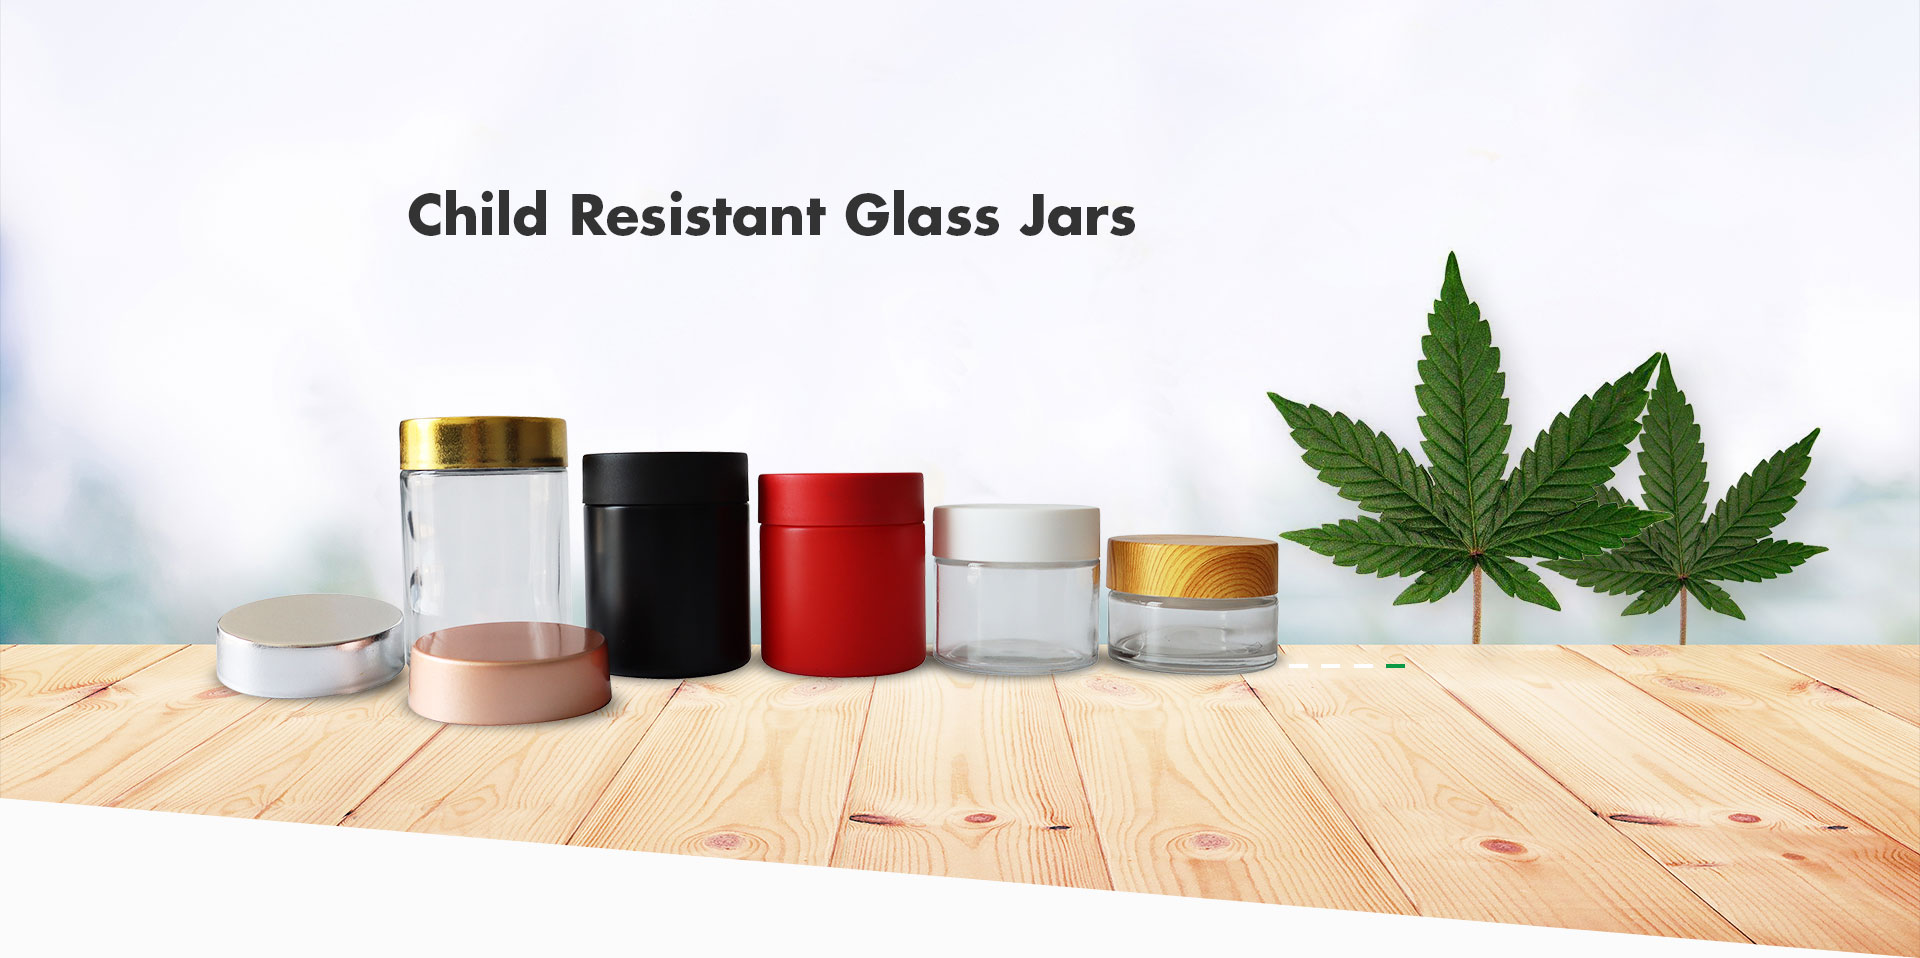 Child Resistant Glass Jars